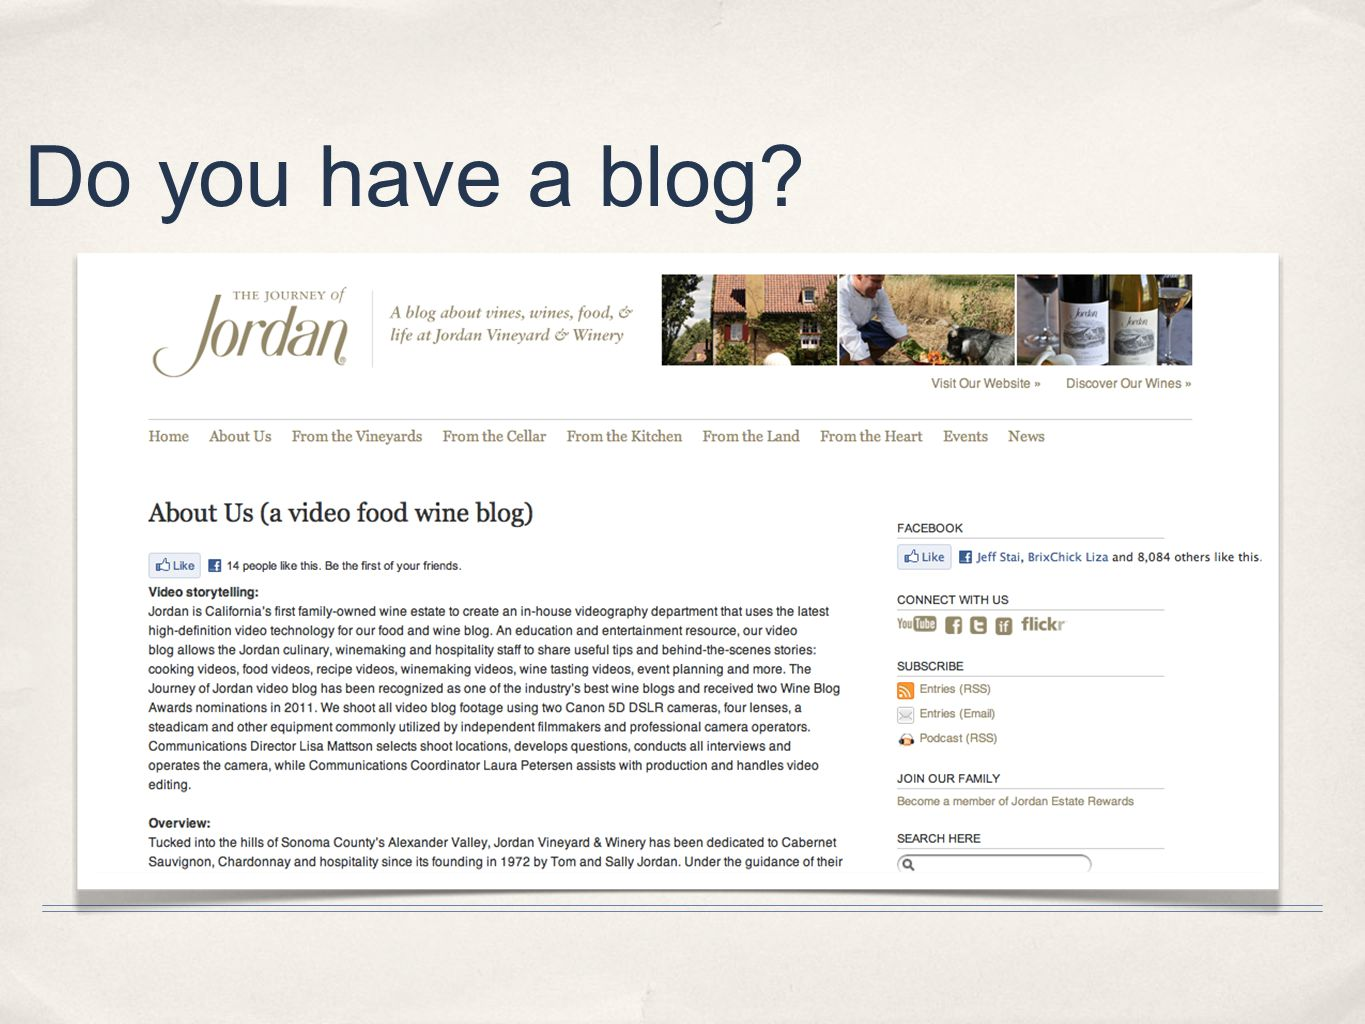 Do you have a blog